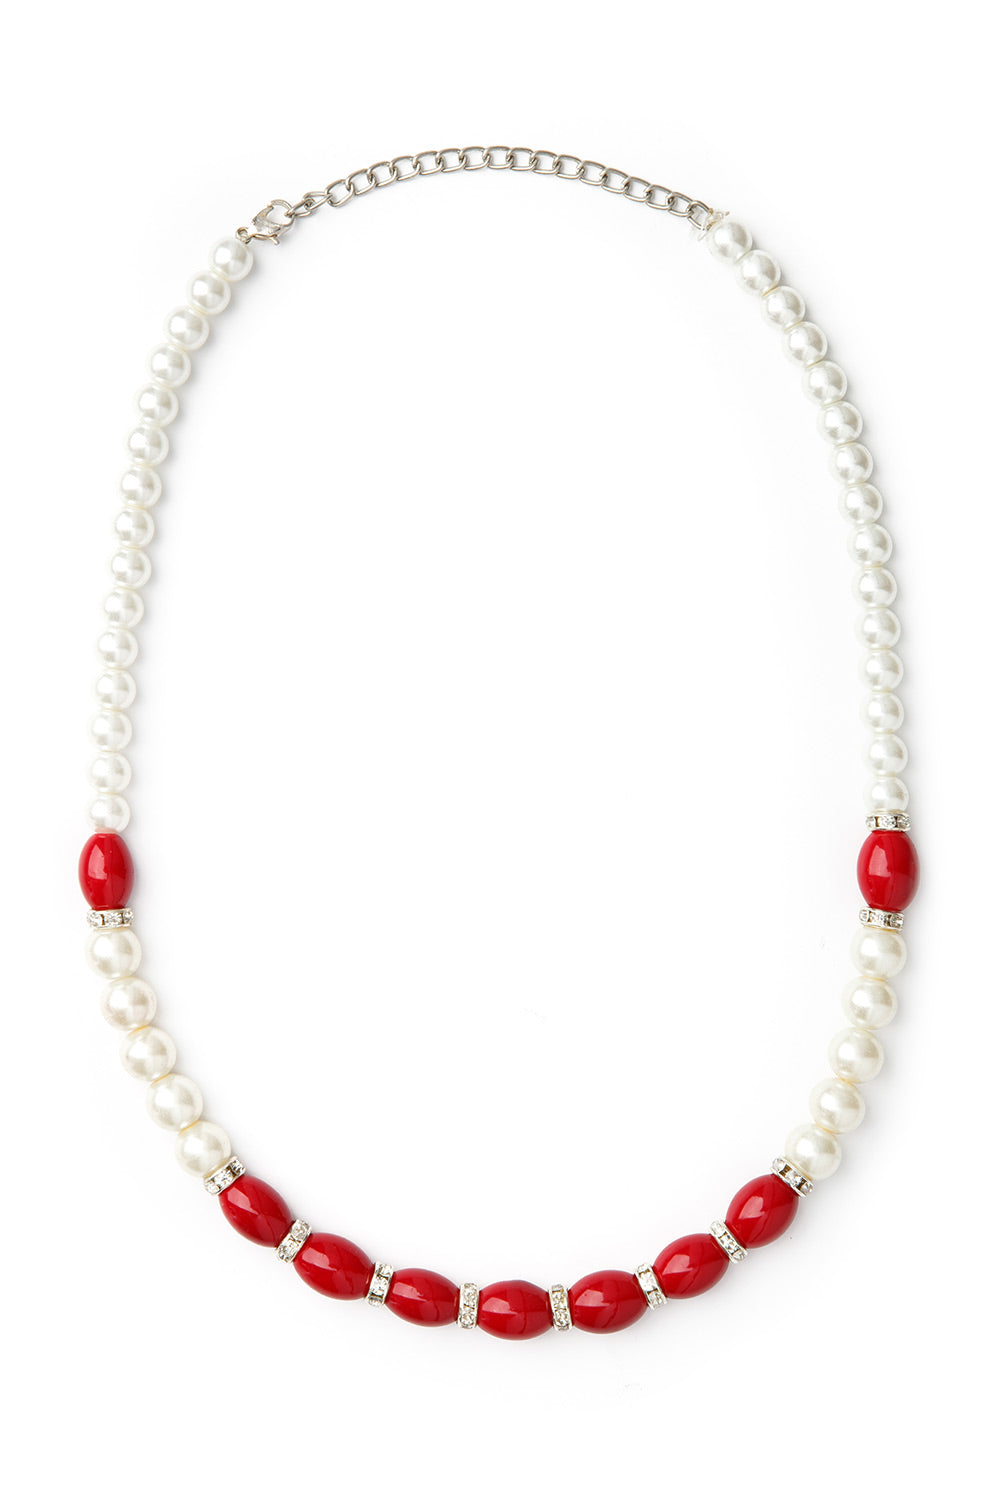 Type 4 Contempo Necklace in Red